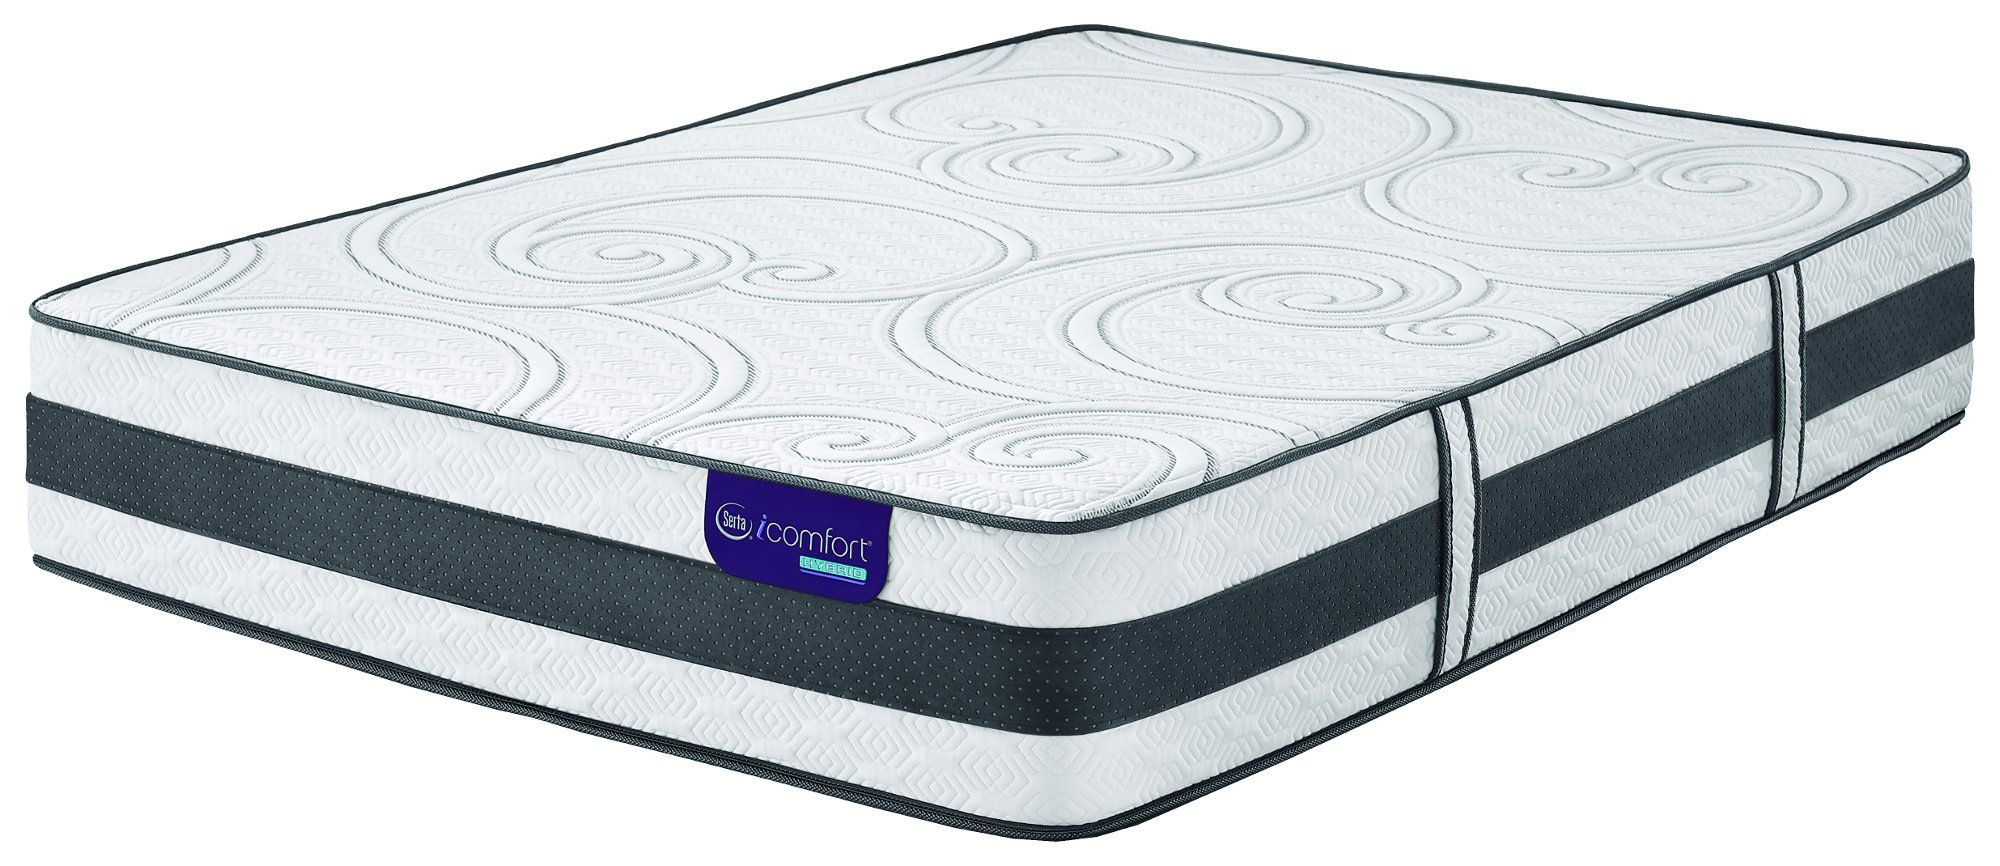 Serta Icomfort Visionaire Plush Twin Xl Mattress In 2020